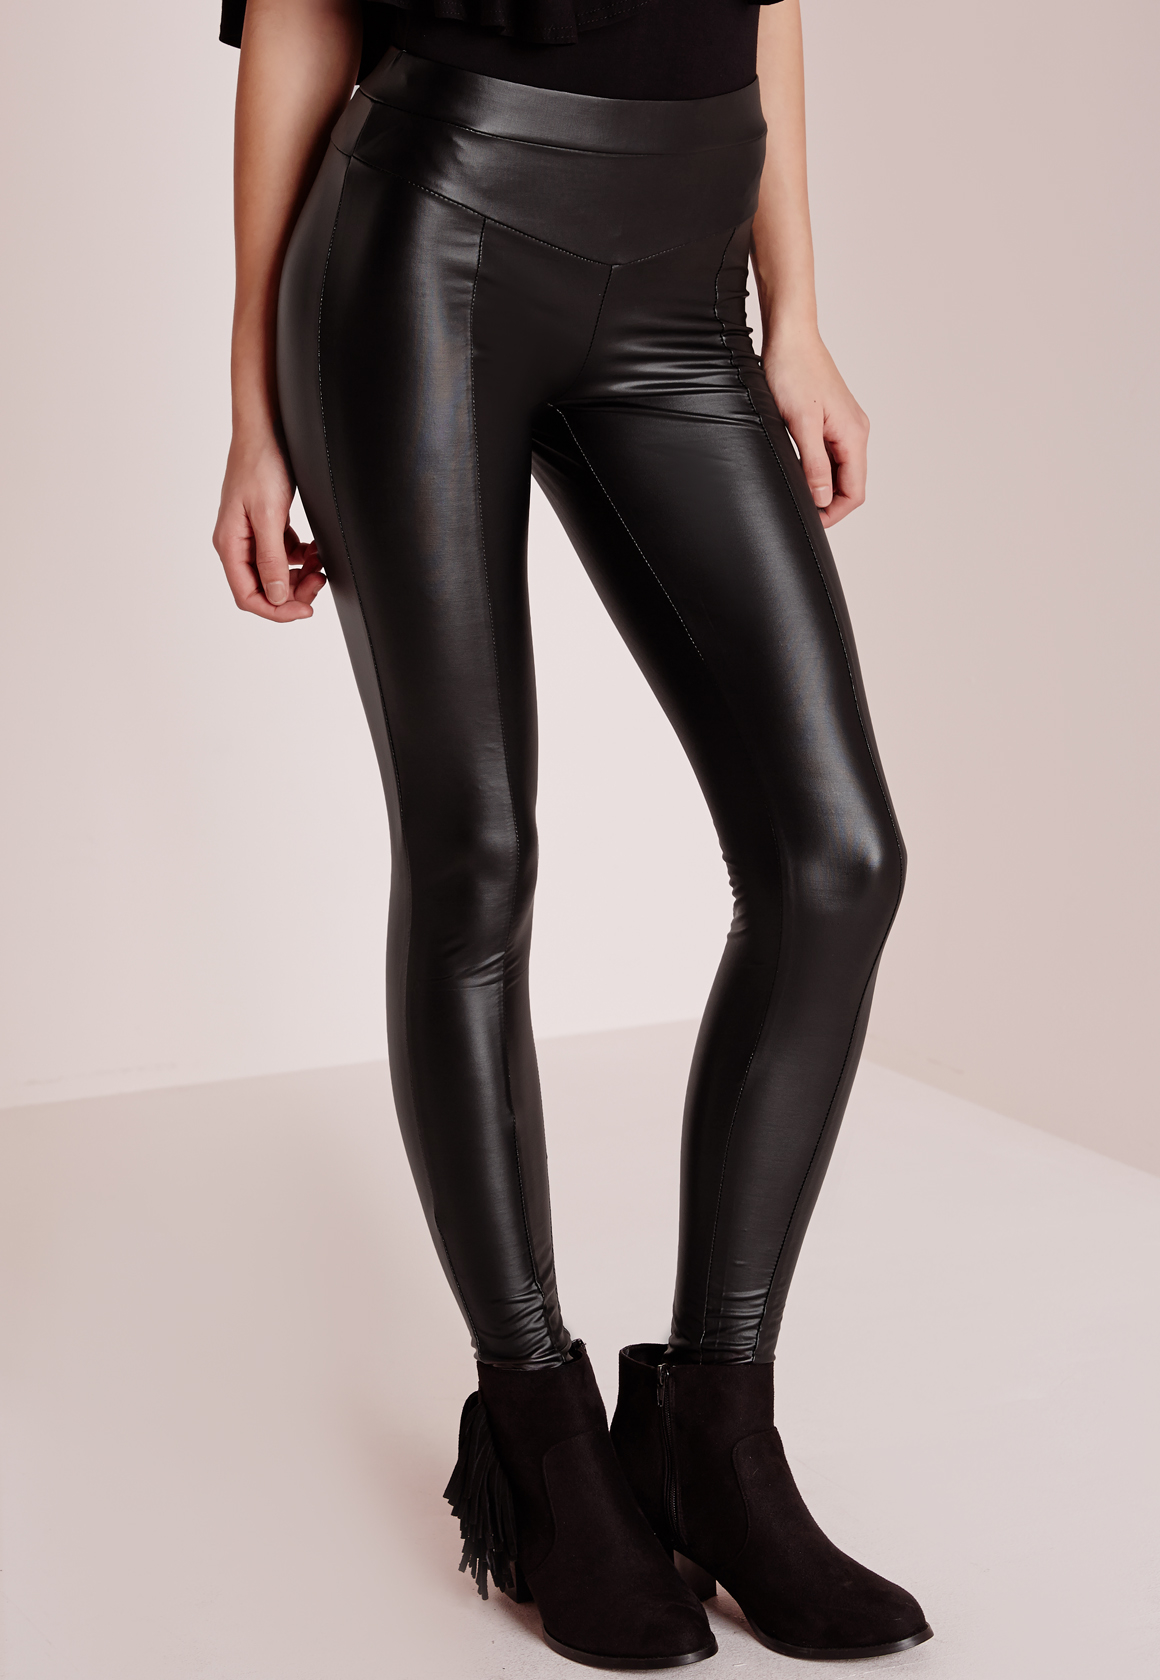 These wet look leggings from V by Very Petite give your look a contemporary, rock feel that's chic, sexy and ultra sleek. Black Wet Look Leggings by V by Very Petite. Wet look leggings.